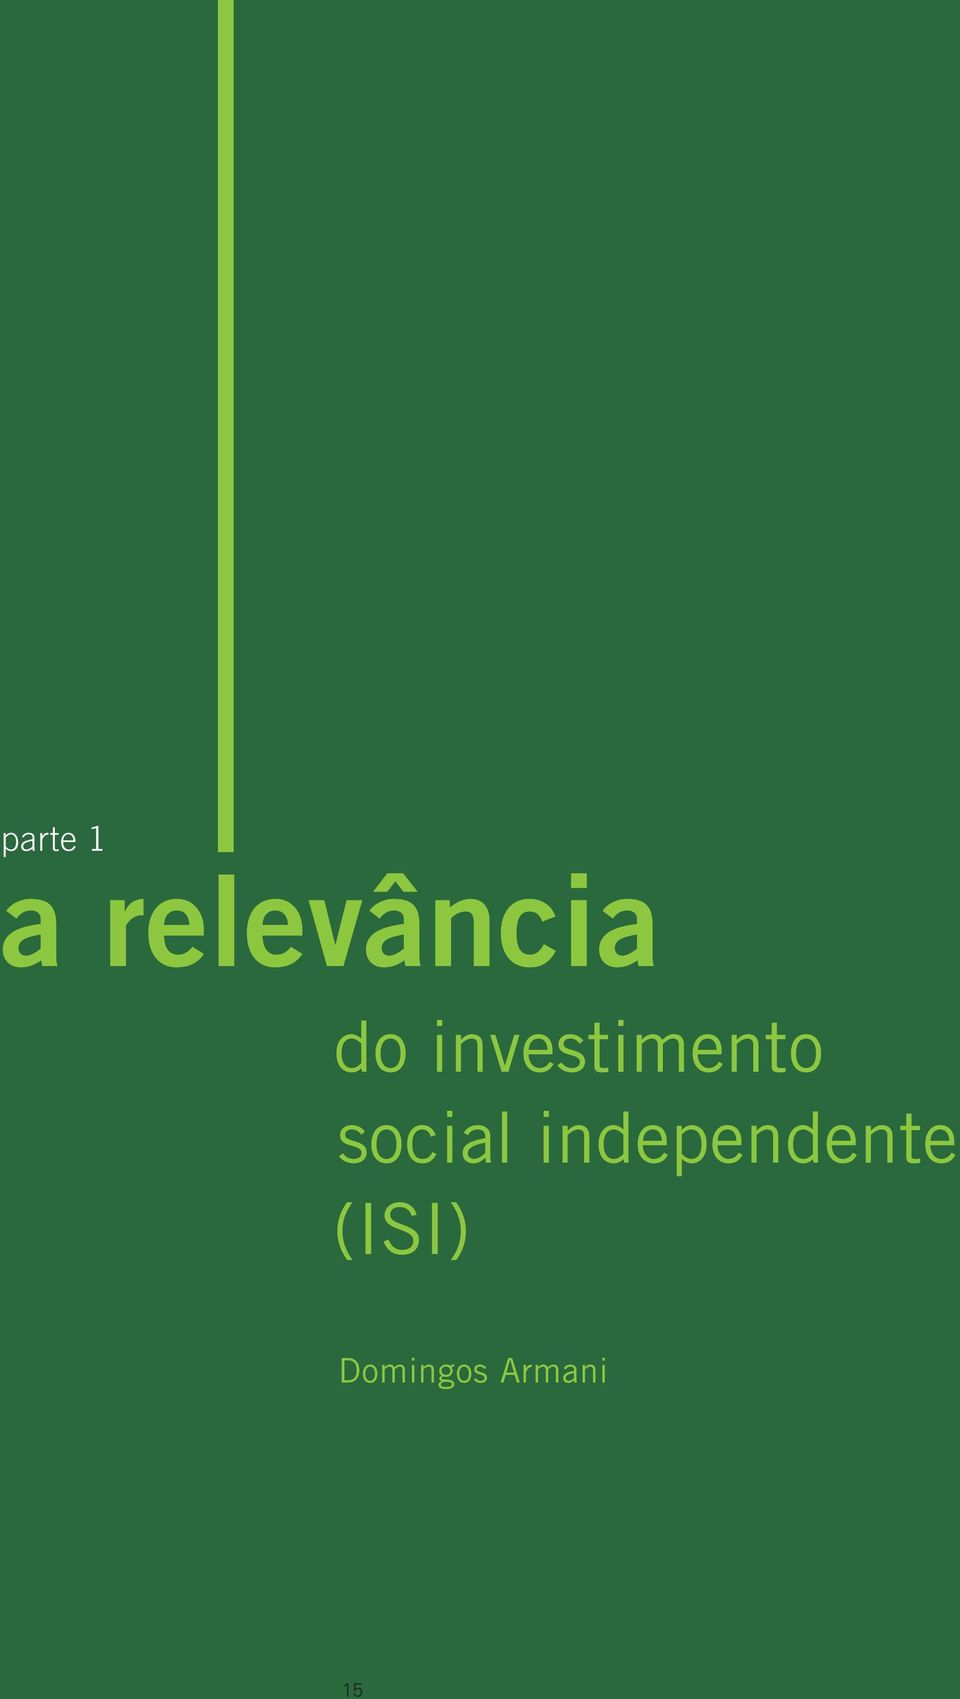 social independente